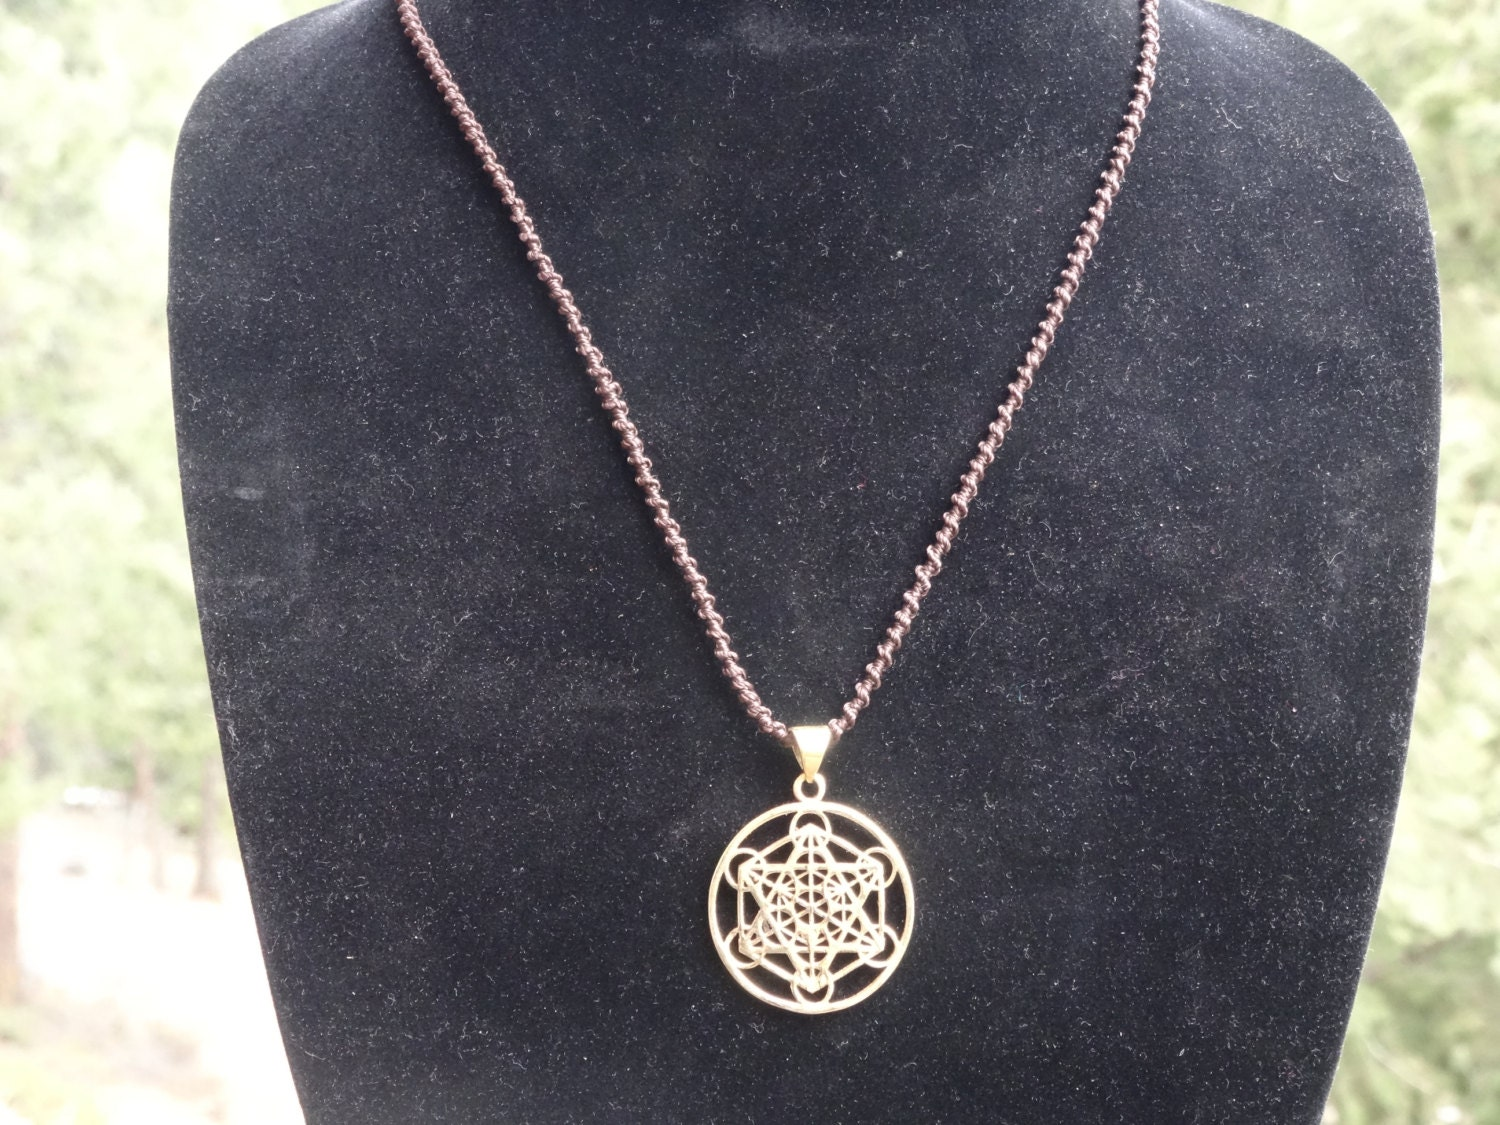 Metatron 39 s cube pendant with macrame by shopgratefullyyours for Metatron s cube jewelry